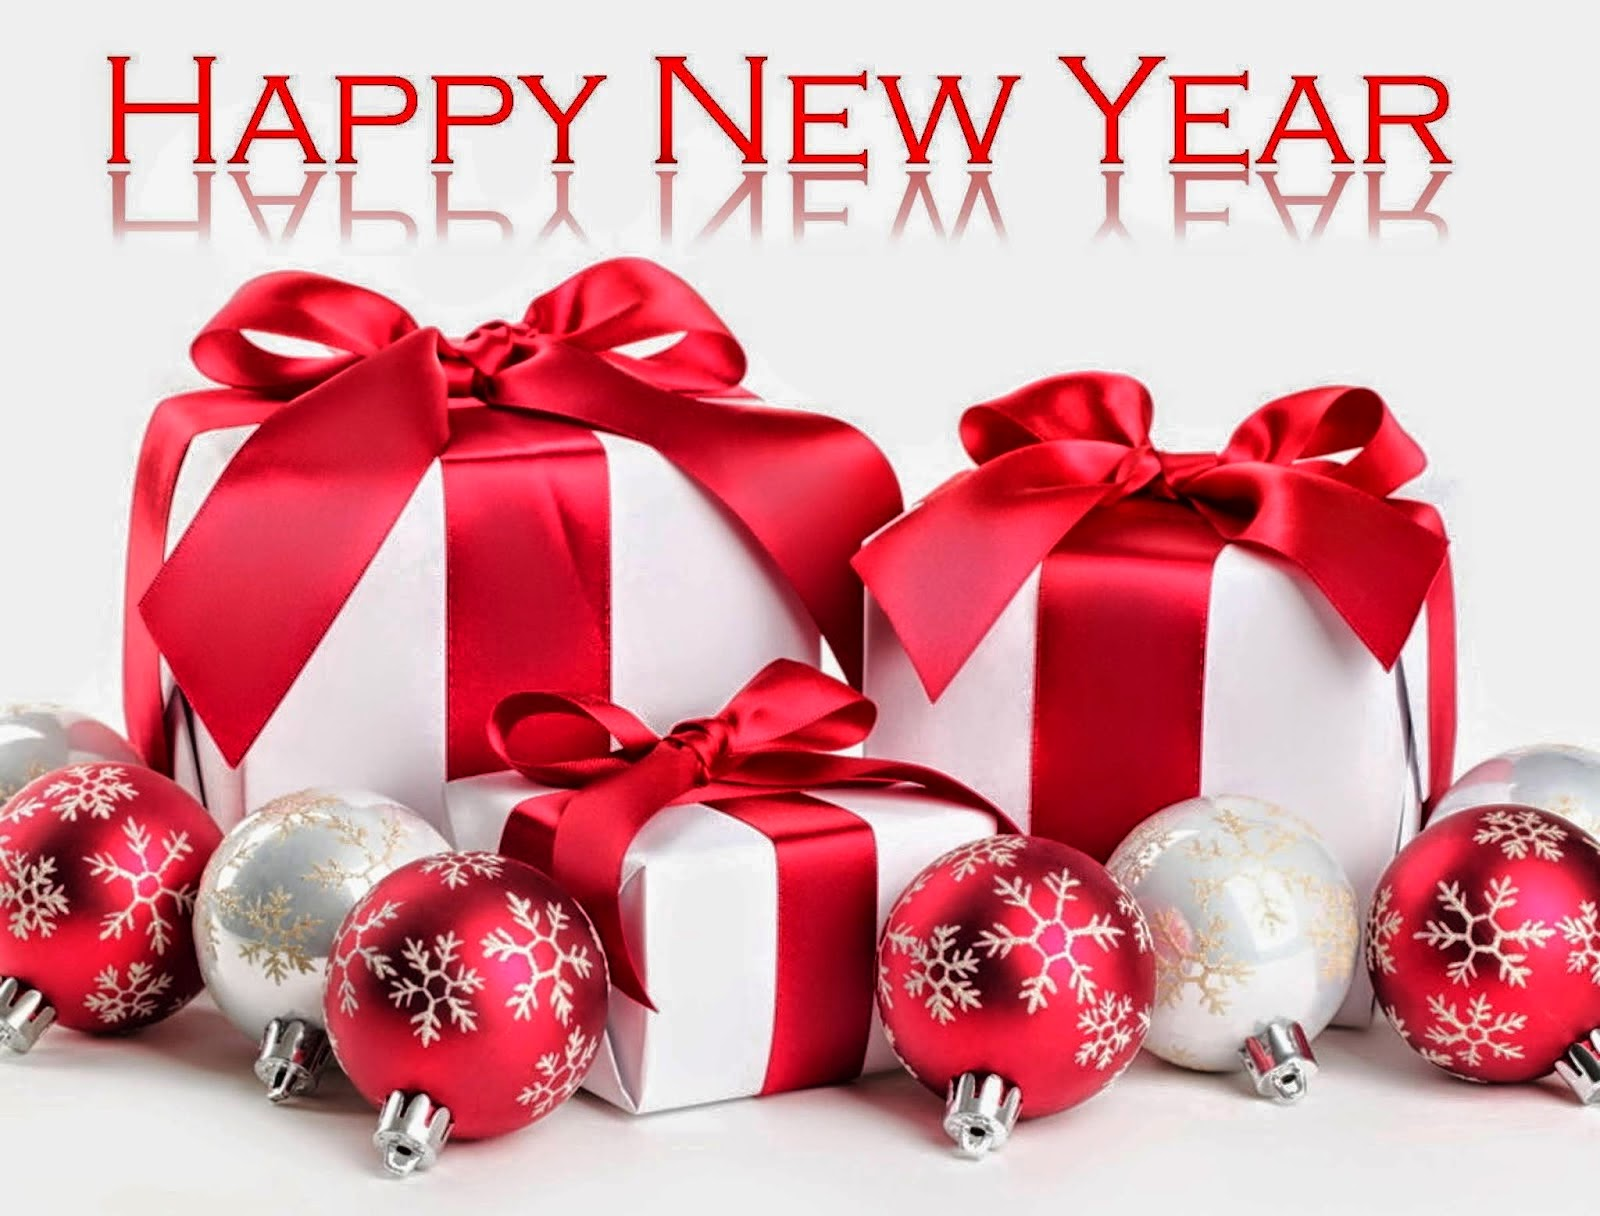 Happy New Year 2019 Gift ideas for Family Members Wallpapers